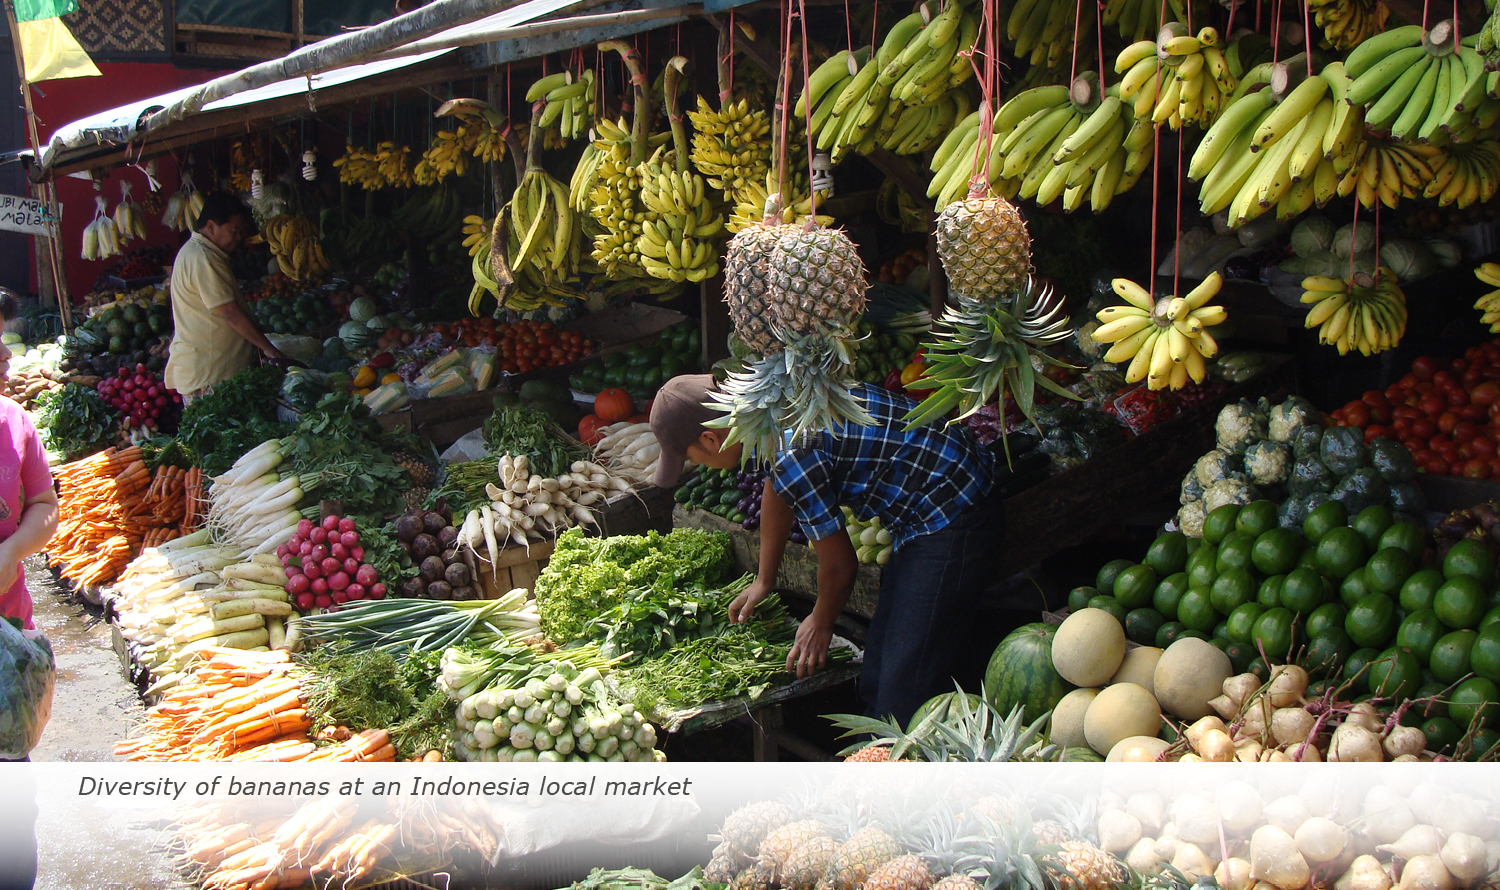 Info & Facts: Diversity of bananas at an Indonesia local market